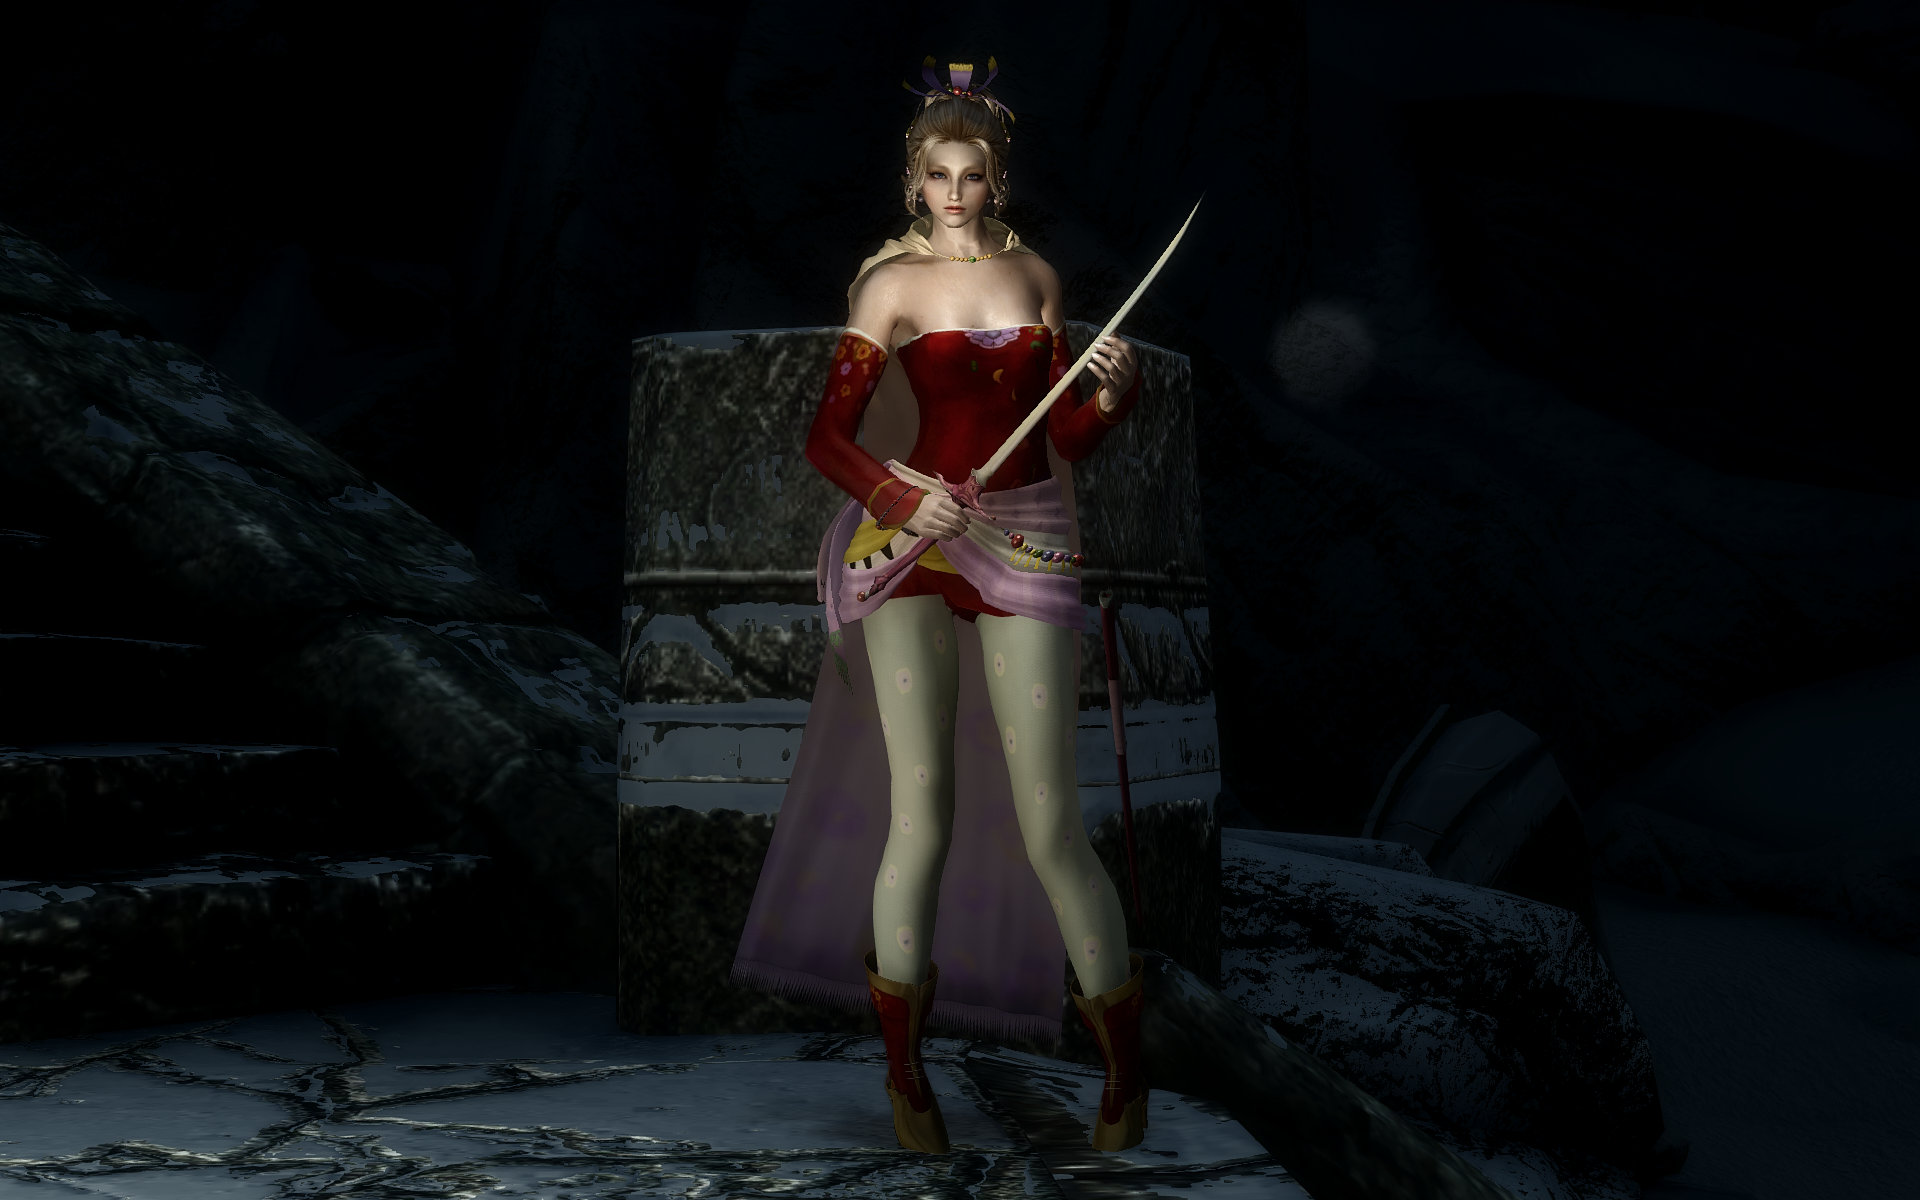 FF6 Tina(Terra) Outfits for UNPB